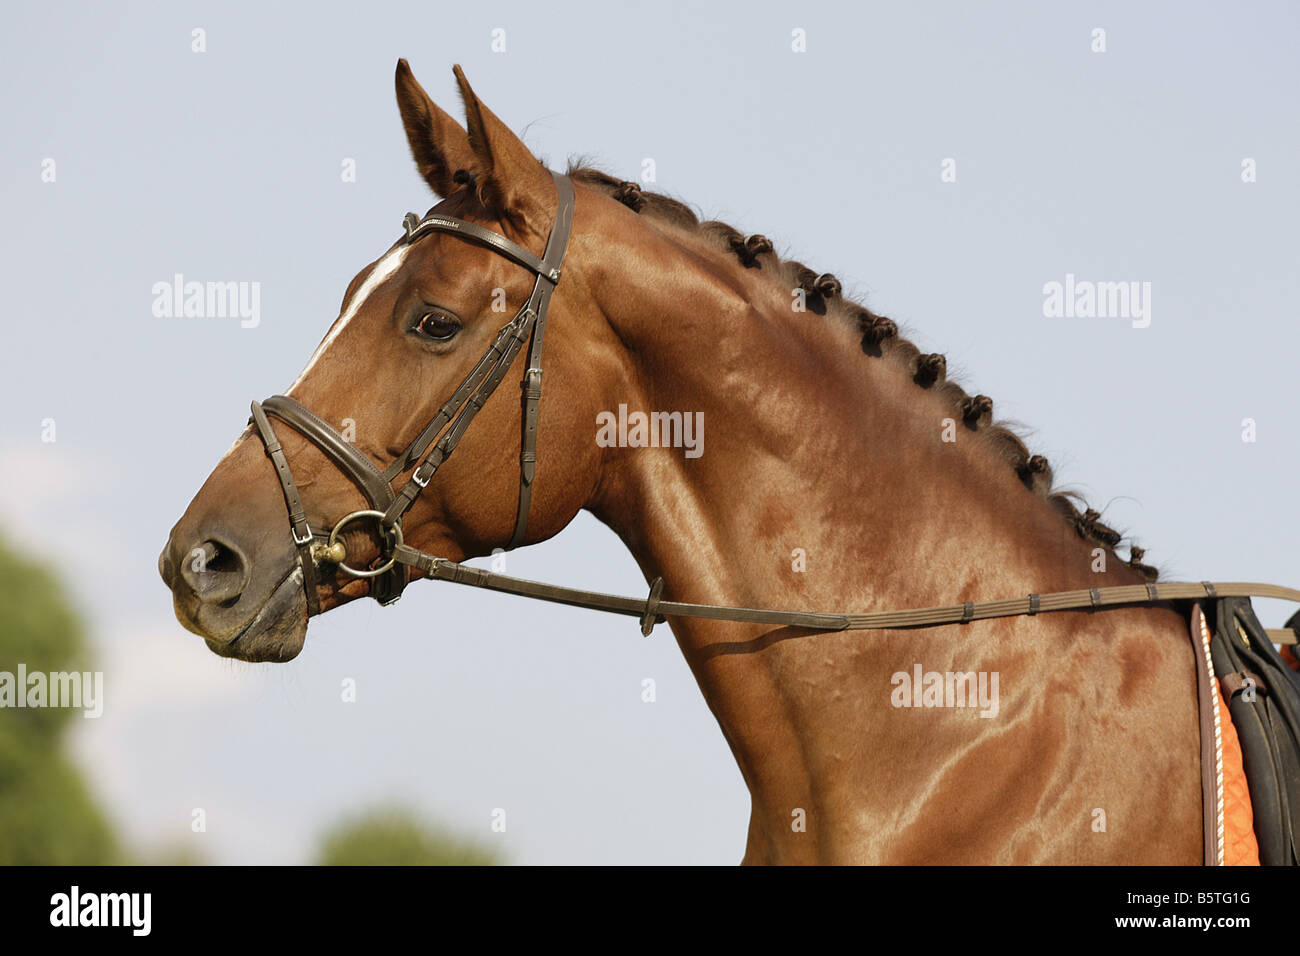 Oldenburg horse with snaffle bit - Stock Image